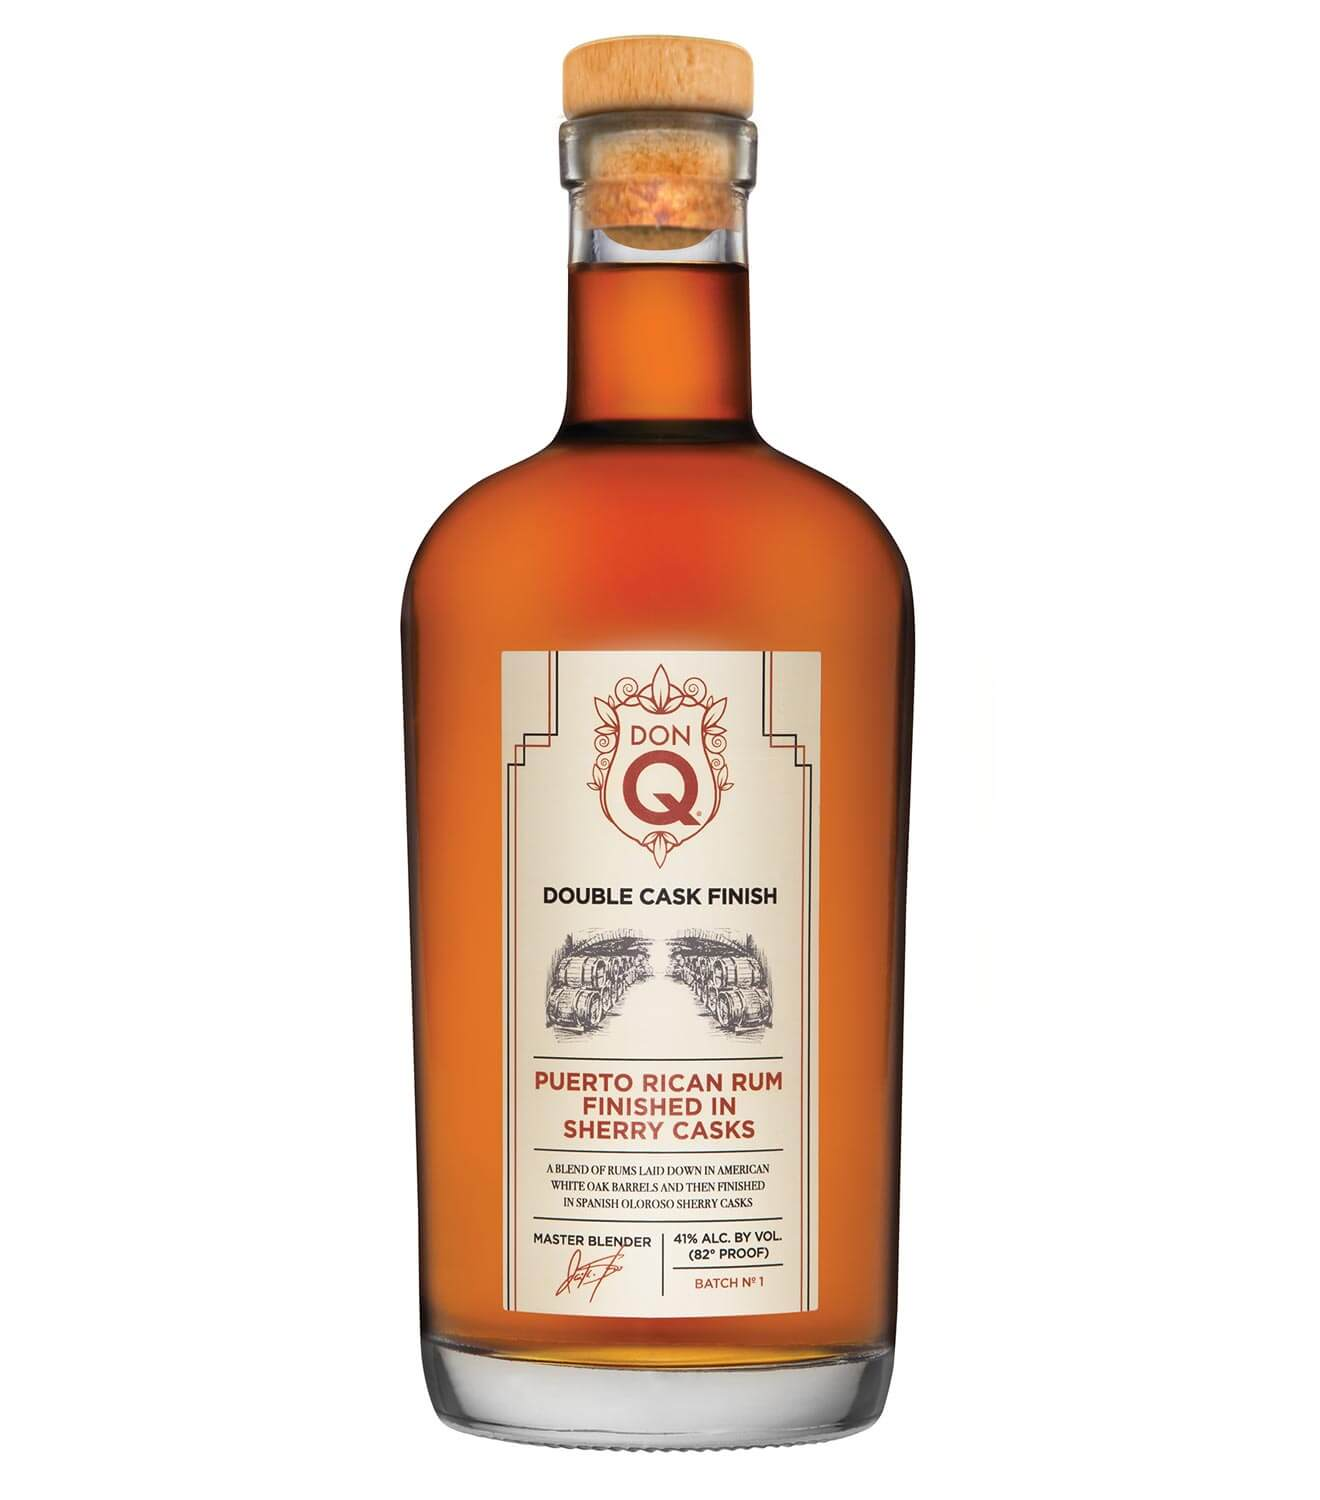 Don Q Double Aged Sherry Cask Finish Rum, bottle on white